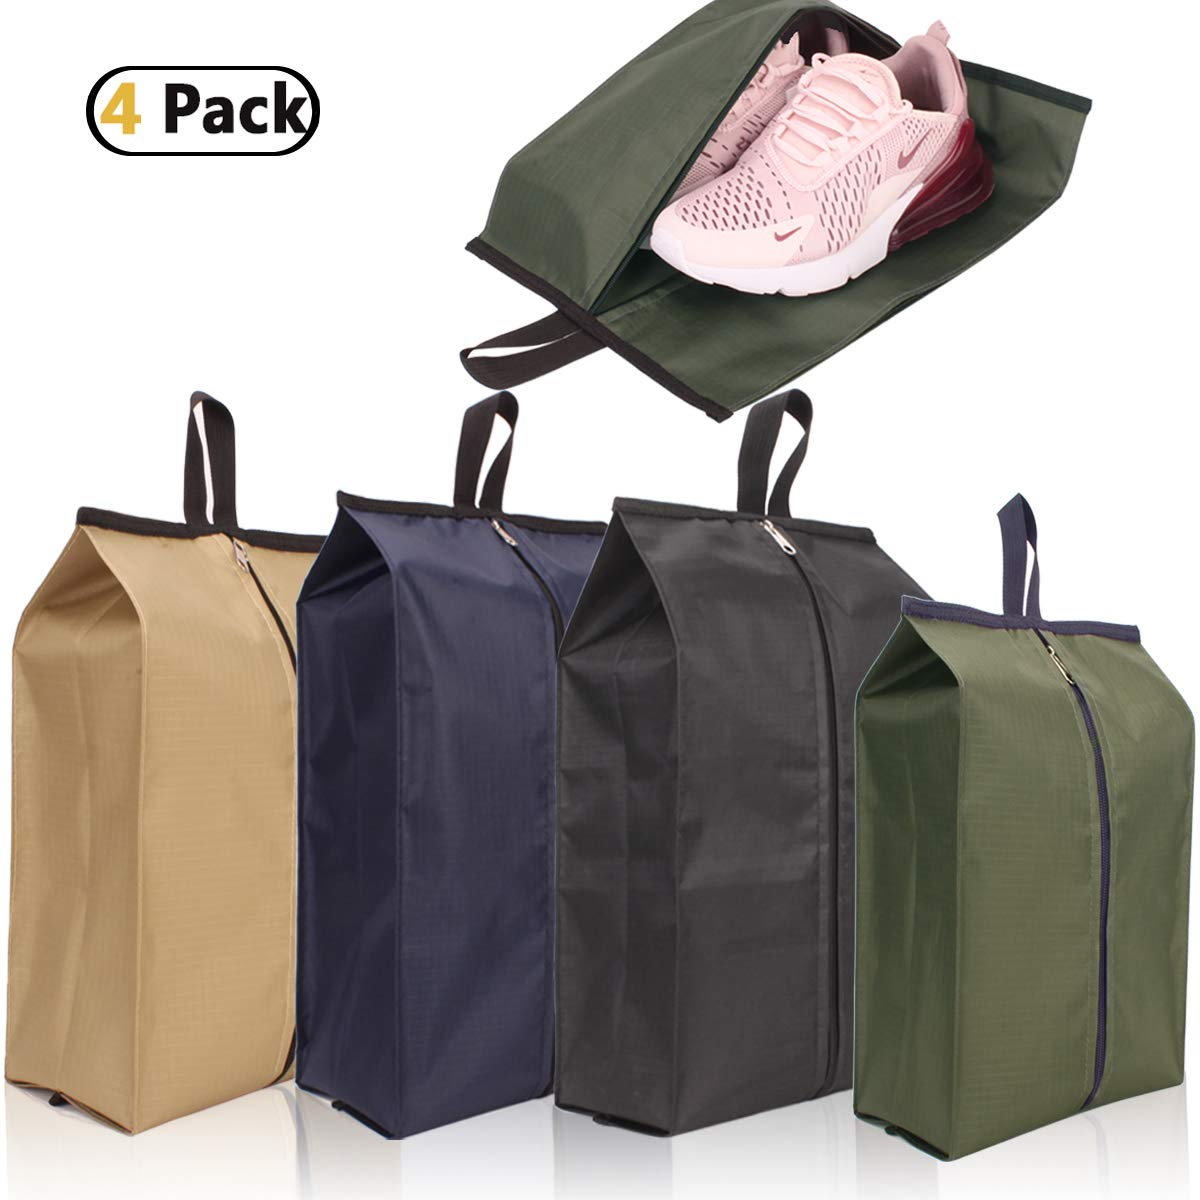 Achiou Travel Shoe Bags Thick 4 Colors Mix Stereoscopic Dustproof Portable Waterproof with Zipper for Men and Women